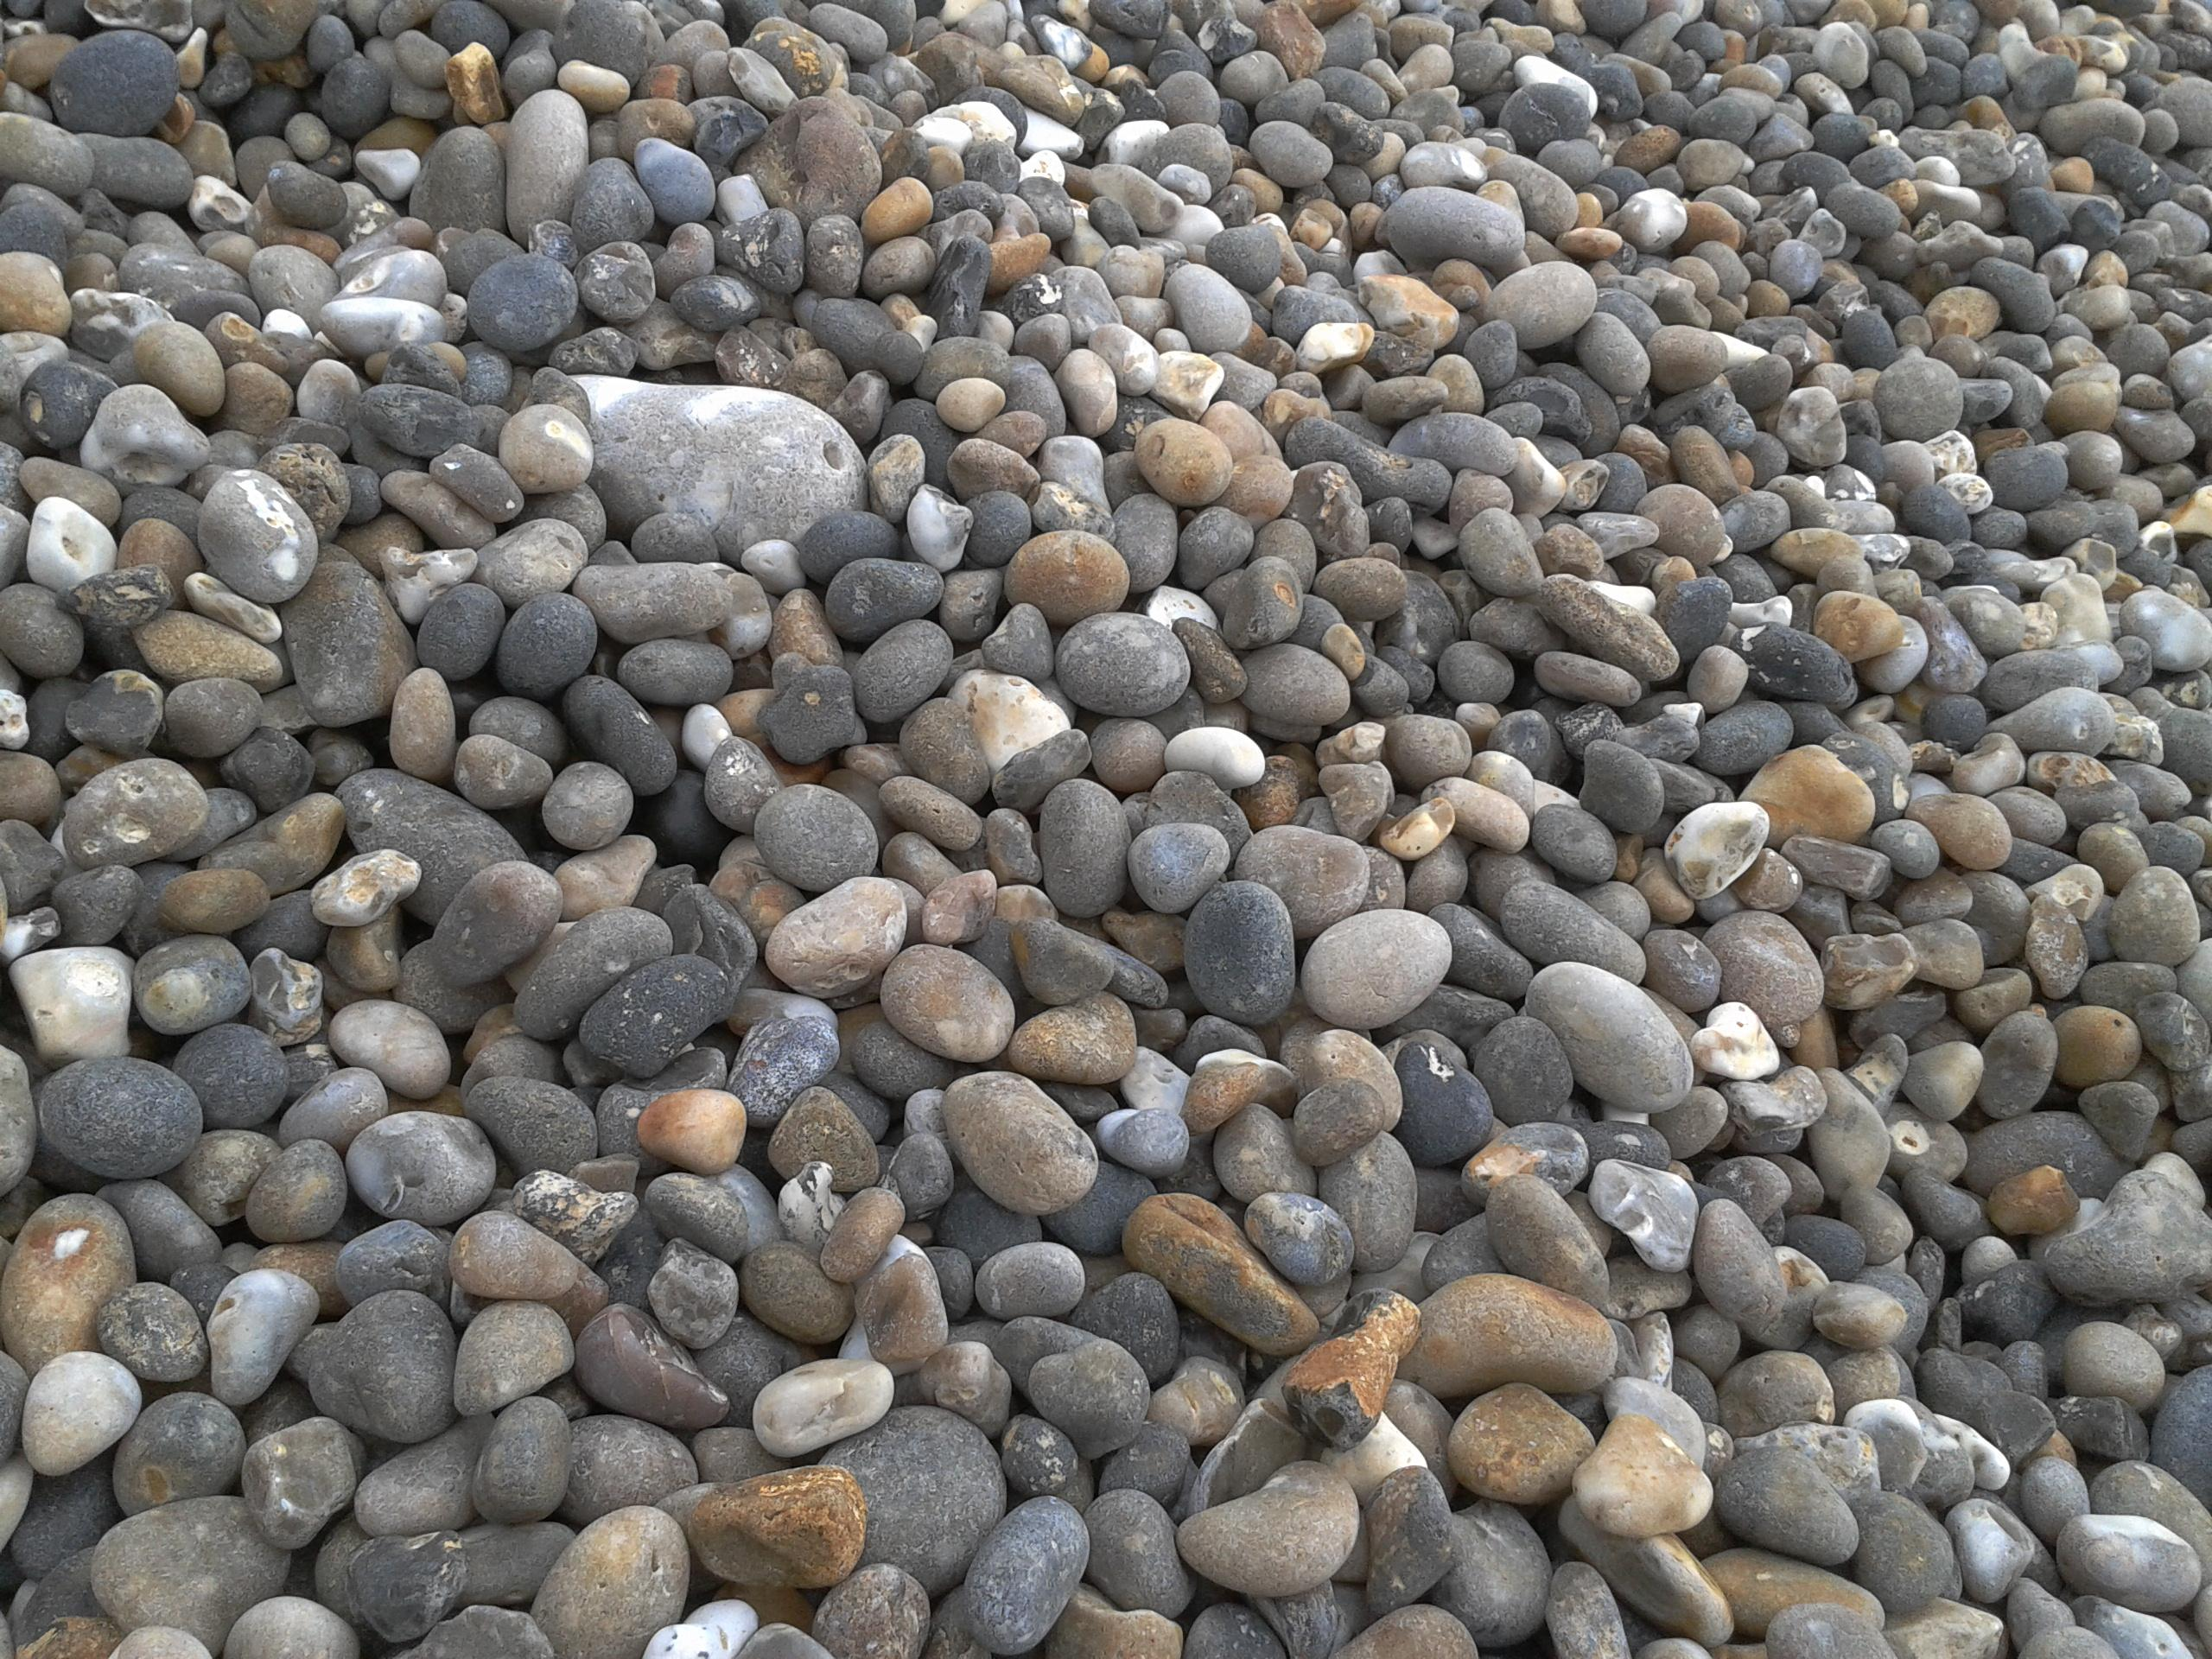 There are many types of rocks that can be used including limestone washed gravel granite and quartzite since it is such a low value material